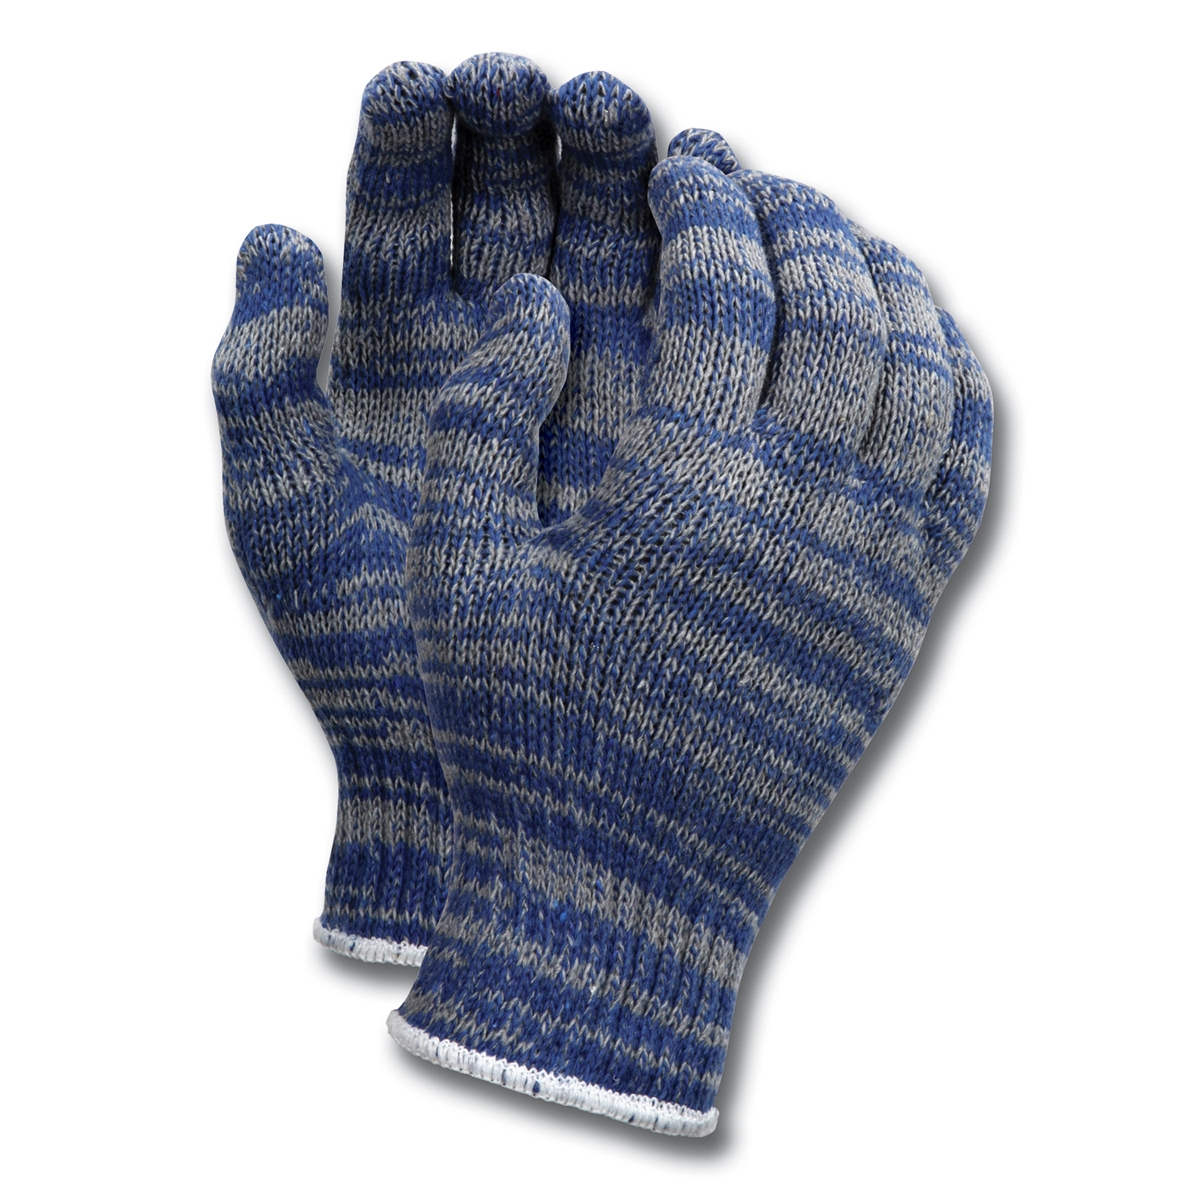 Memphis 9642 String Knit Gloves 7 Gauge Cotton Poly